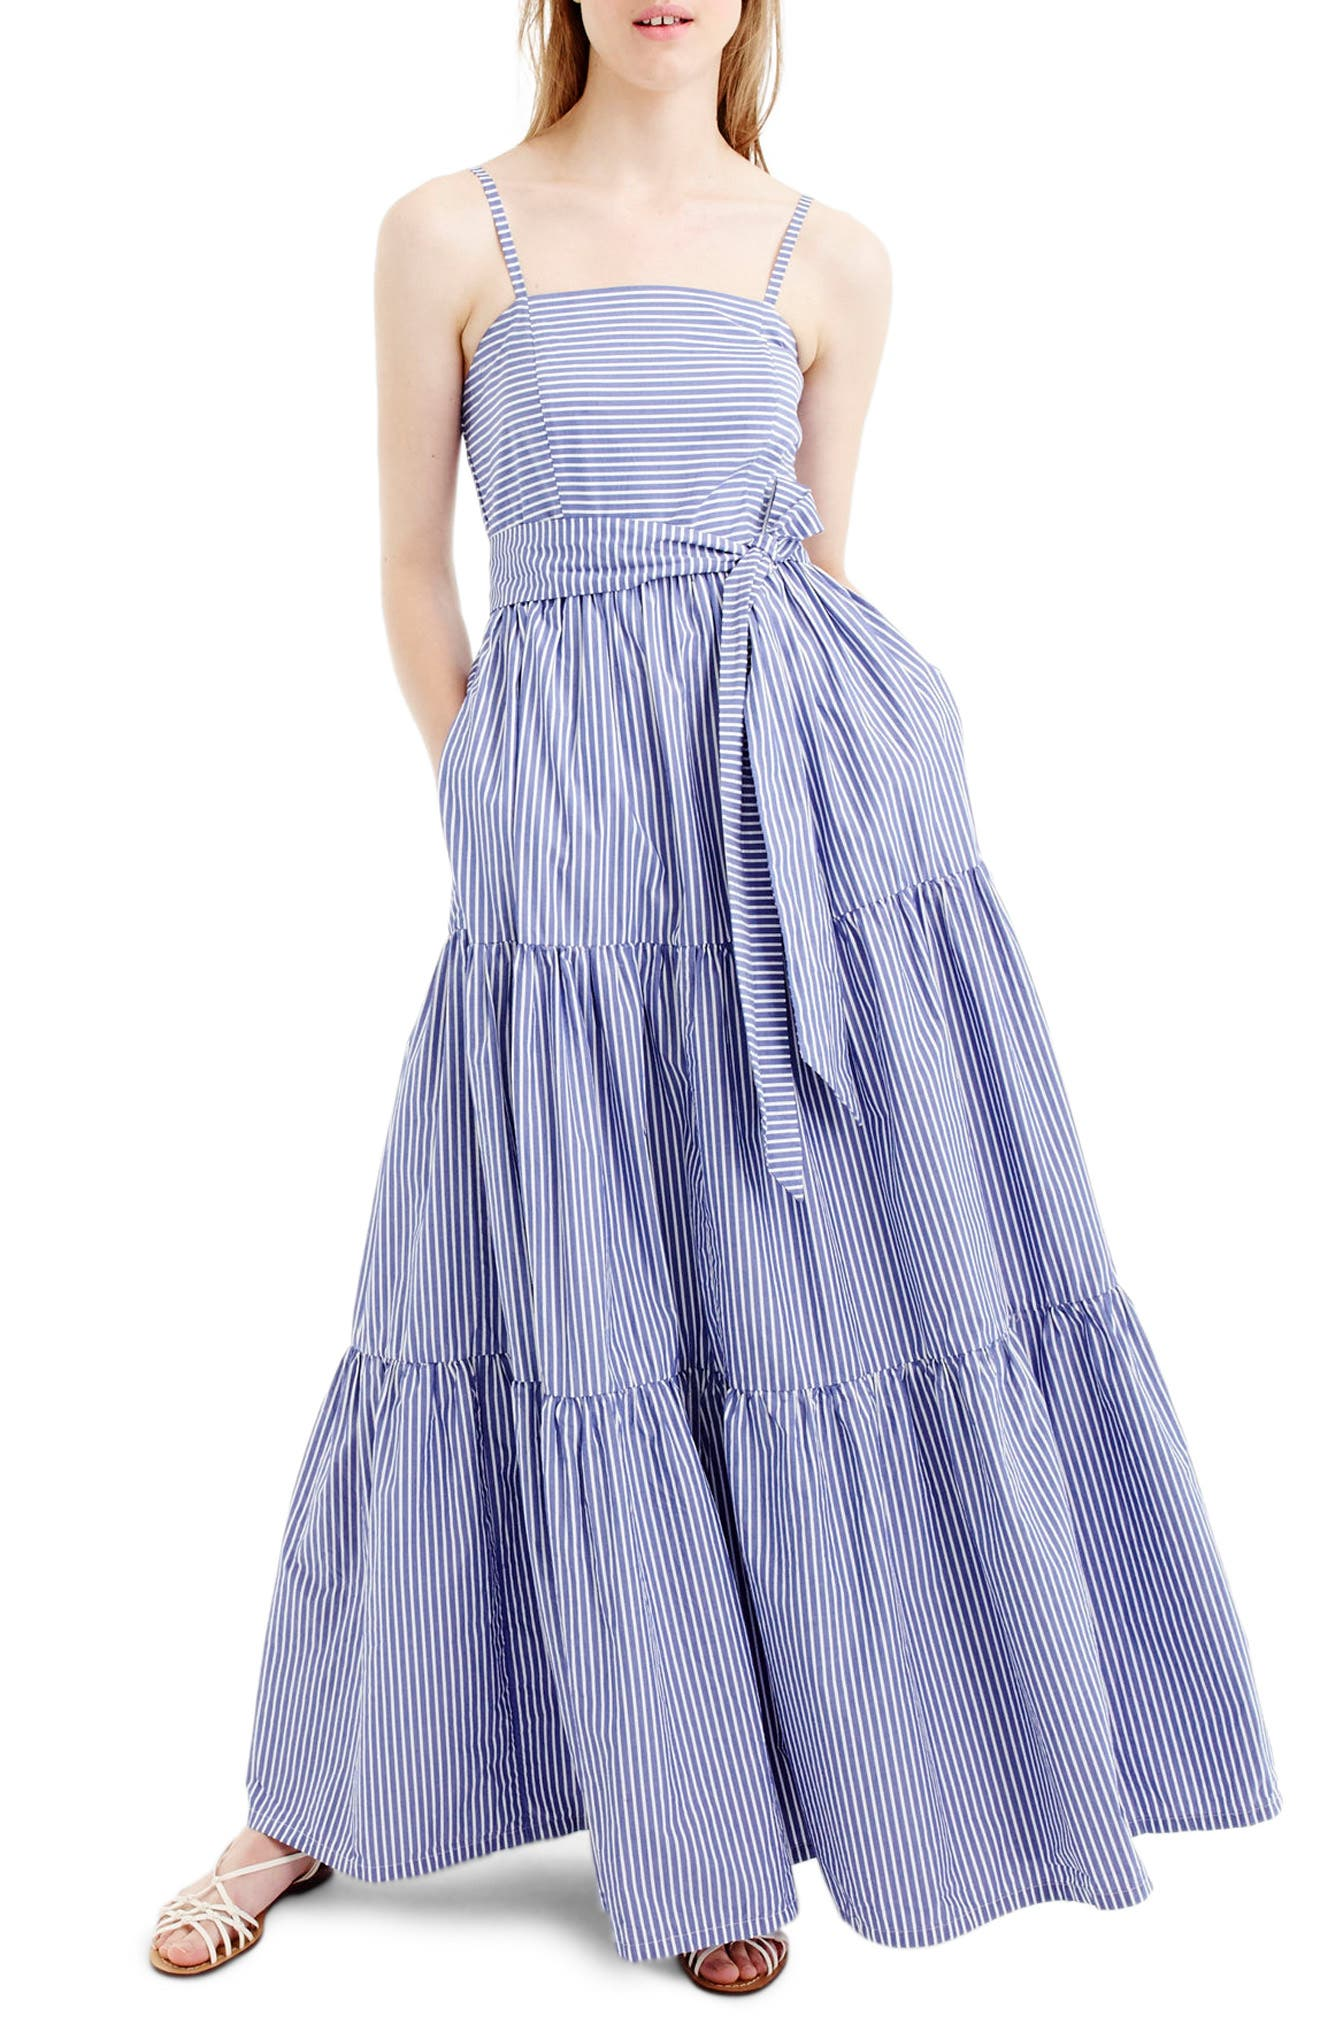 J.Crew Stripe Tiered Maxi Dress (Regular & Petite)